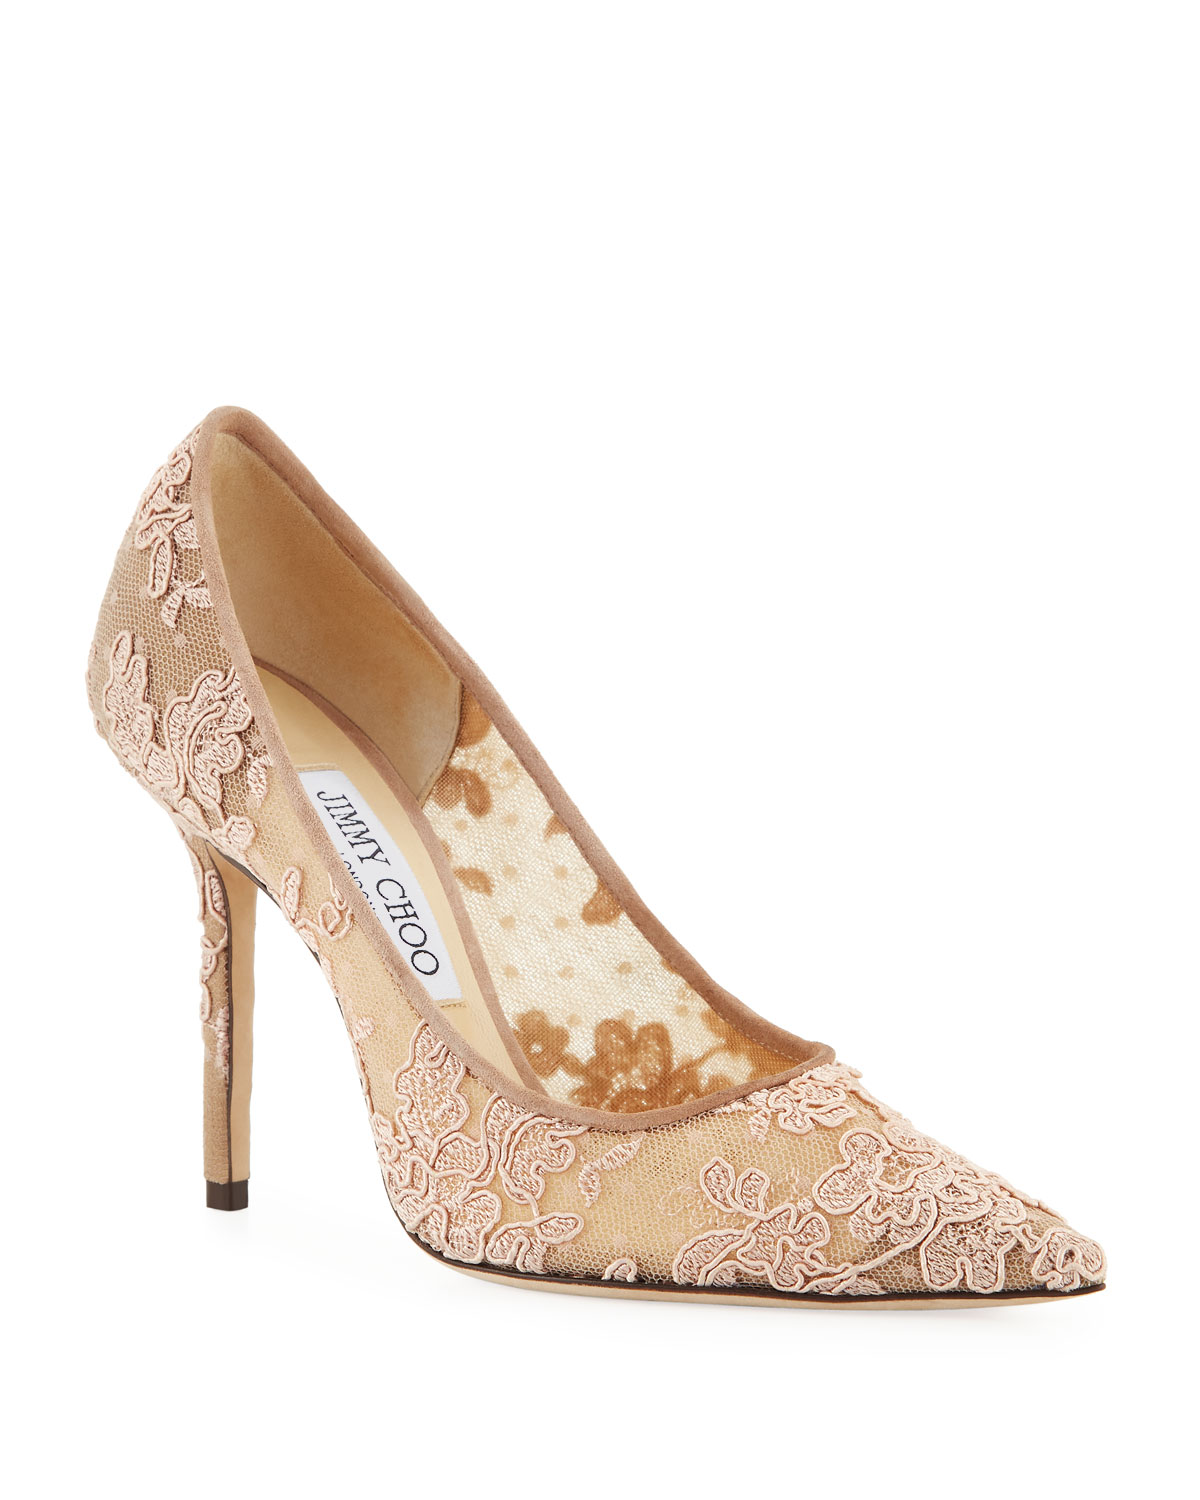 1d28f58c9483 Jimmy Choo Love Lace Pointed Pumps